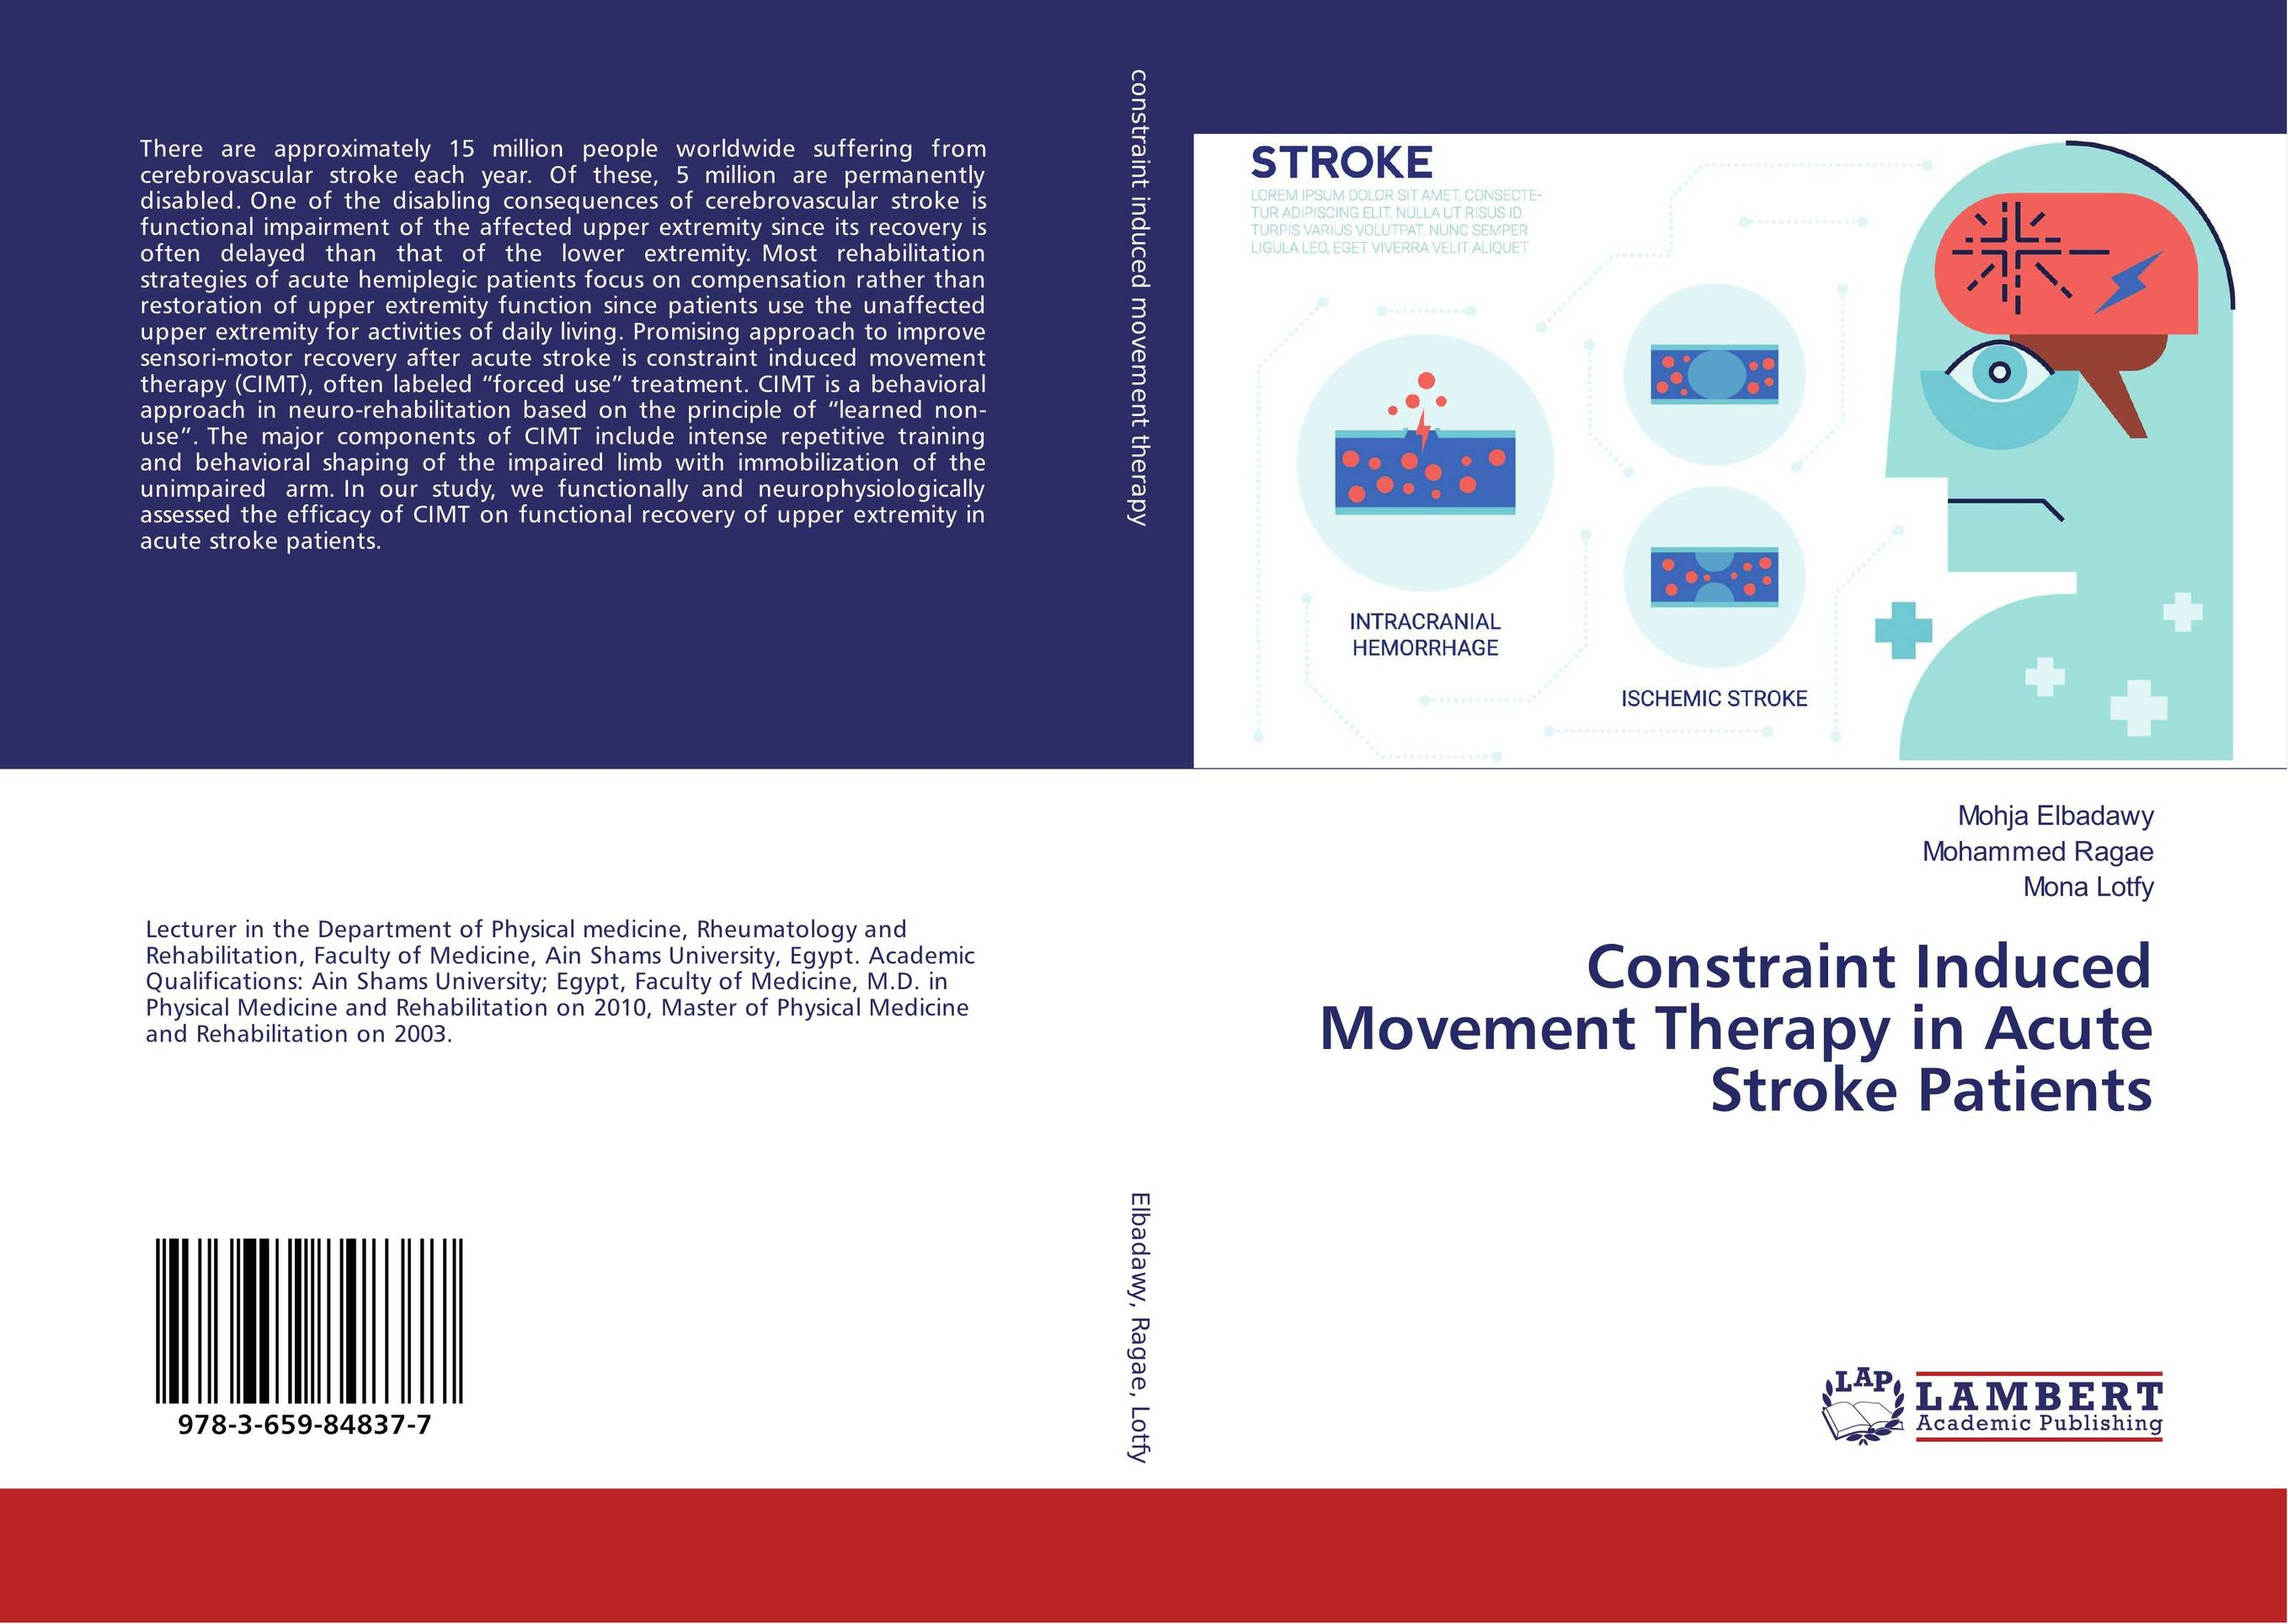 Constraint Induced Movement Therapy in Acute Stroke Patients upper lower limbs physiotherapy rehabilitation exercise therapy bike for serious hemiplegia apoplexy stroke patient lying in bed